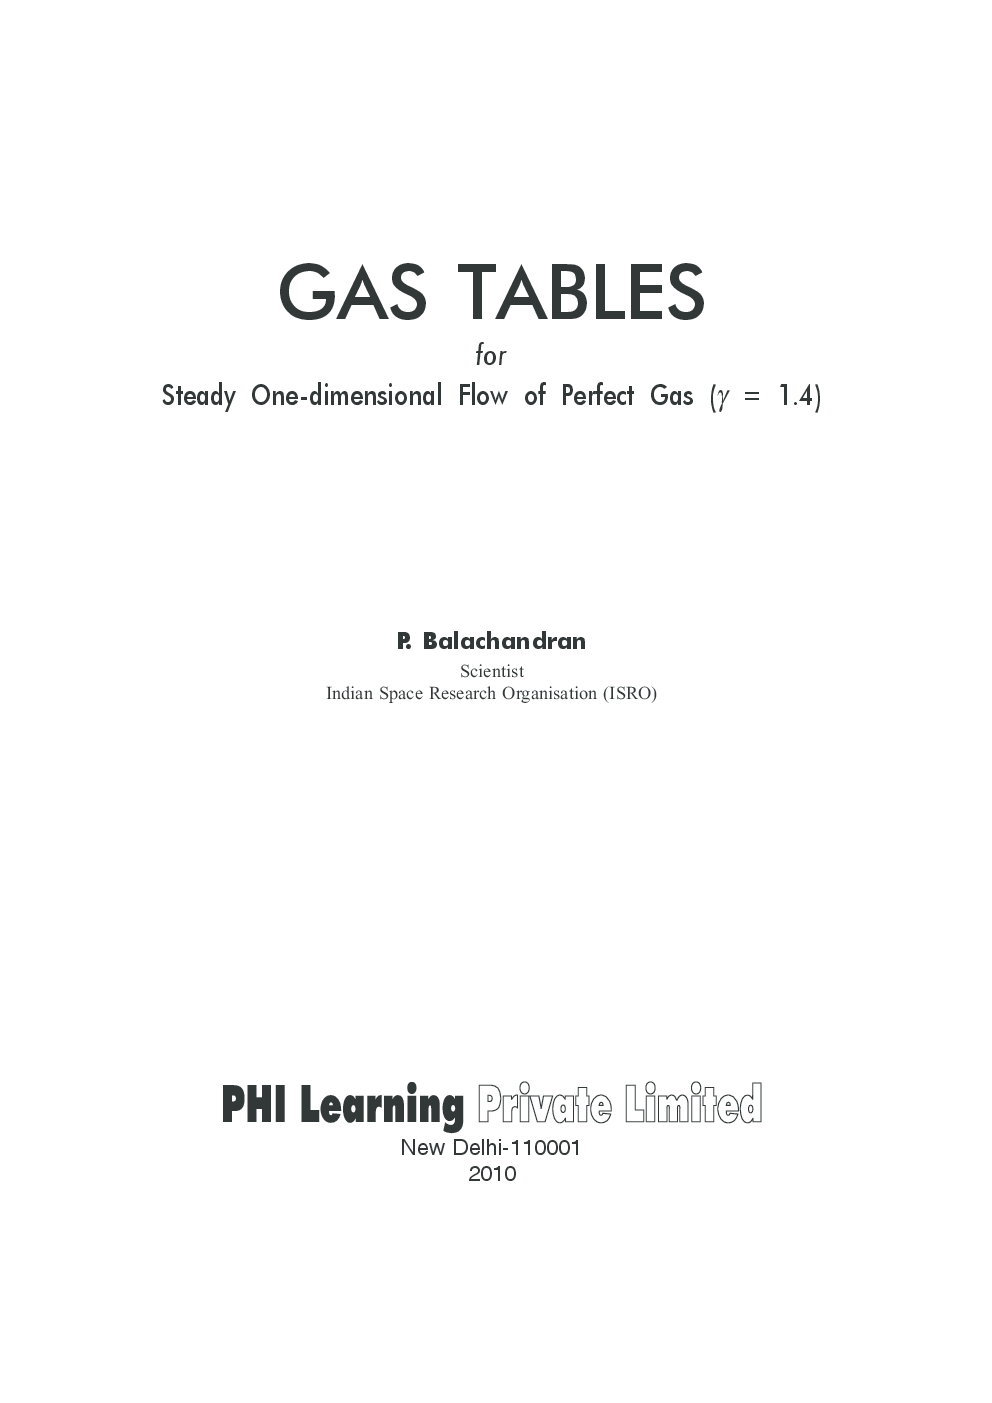 Gas Tables: For Steady One-Dimensional Flow Of Perfect Gas - Page 2